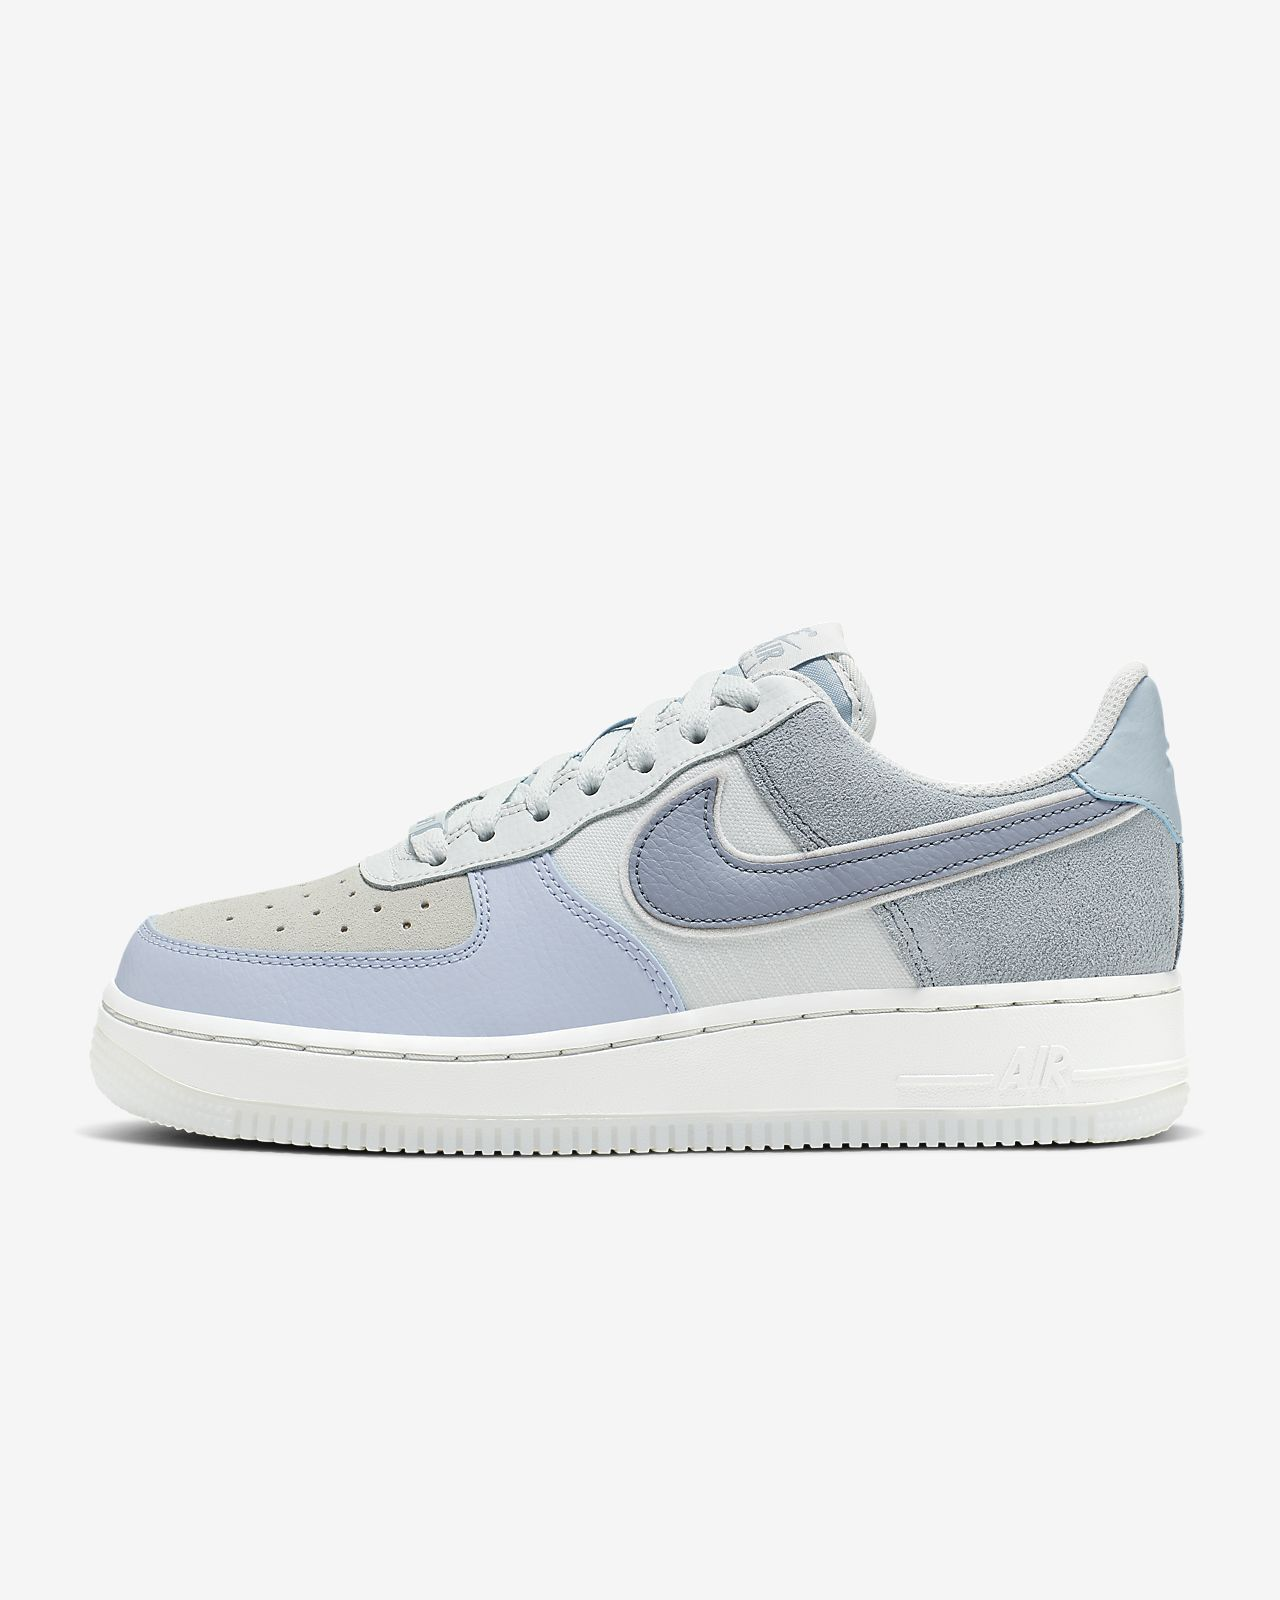 Air Force 1 07 Lx Baskets Basses Nike Air Force 1 07 Low Premium Women S Shoe With Images Air Force One Shoes Air Force Shoes Nike Air